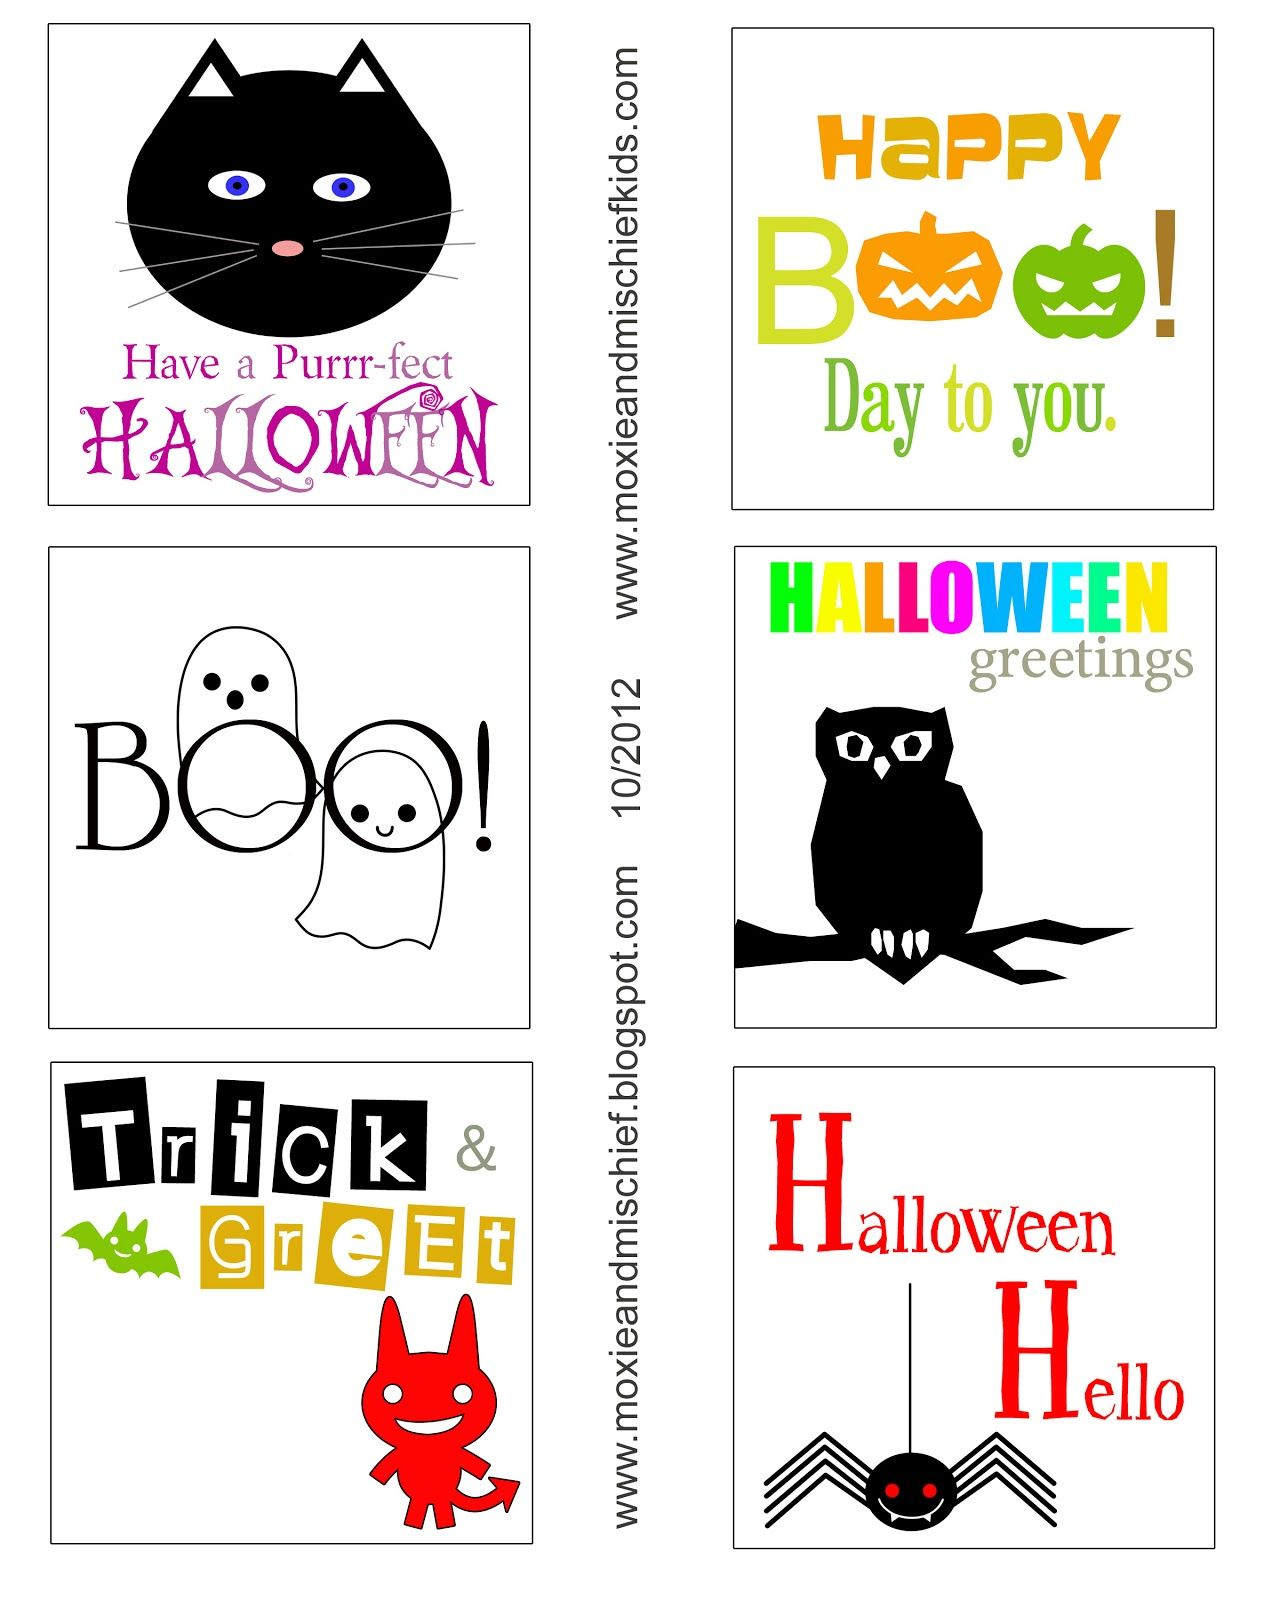 Moxie and Mischief Blog: Freebies: Halloween 2012 Printables